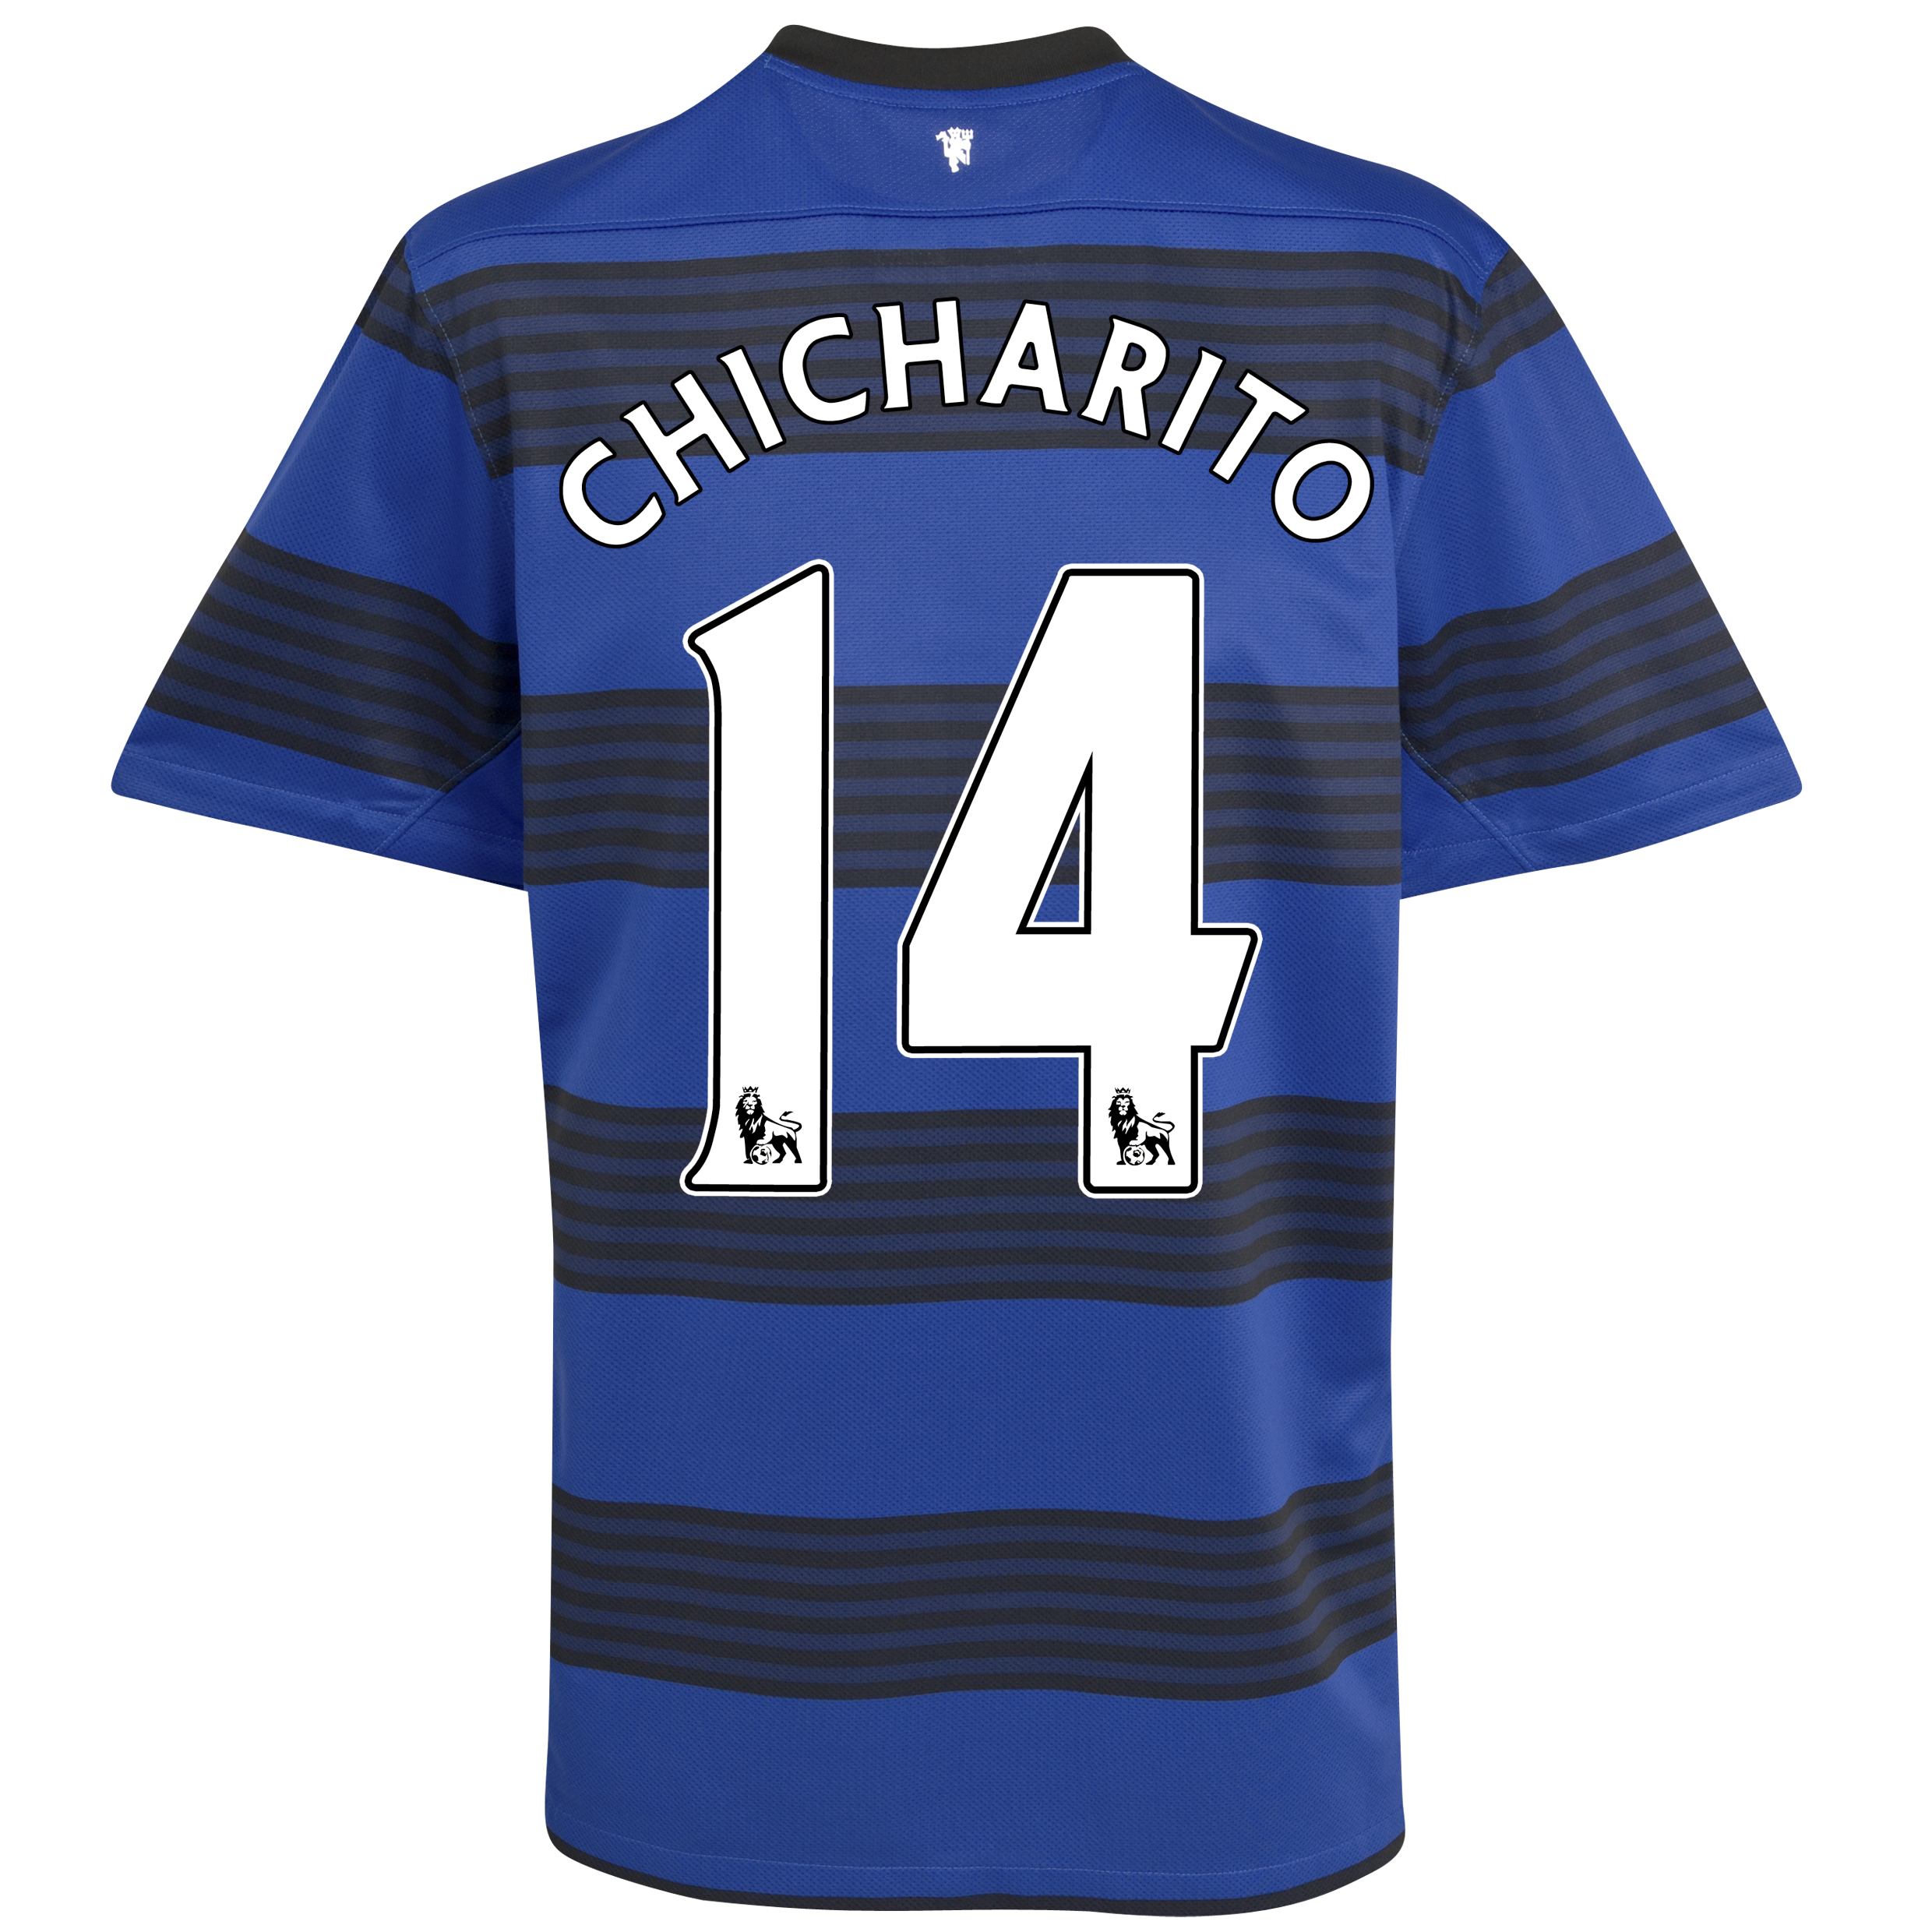 Manchester United Away Shirt 2011/12 with Chicharito 14 printing